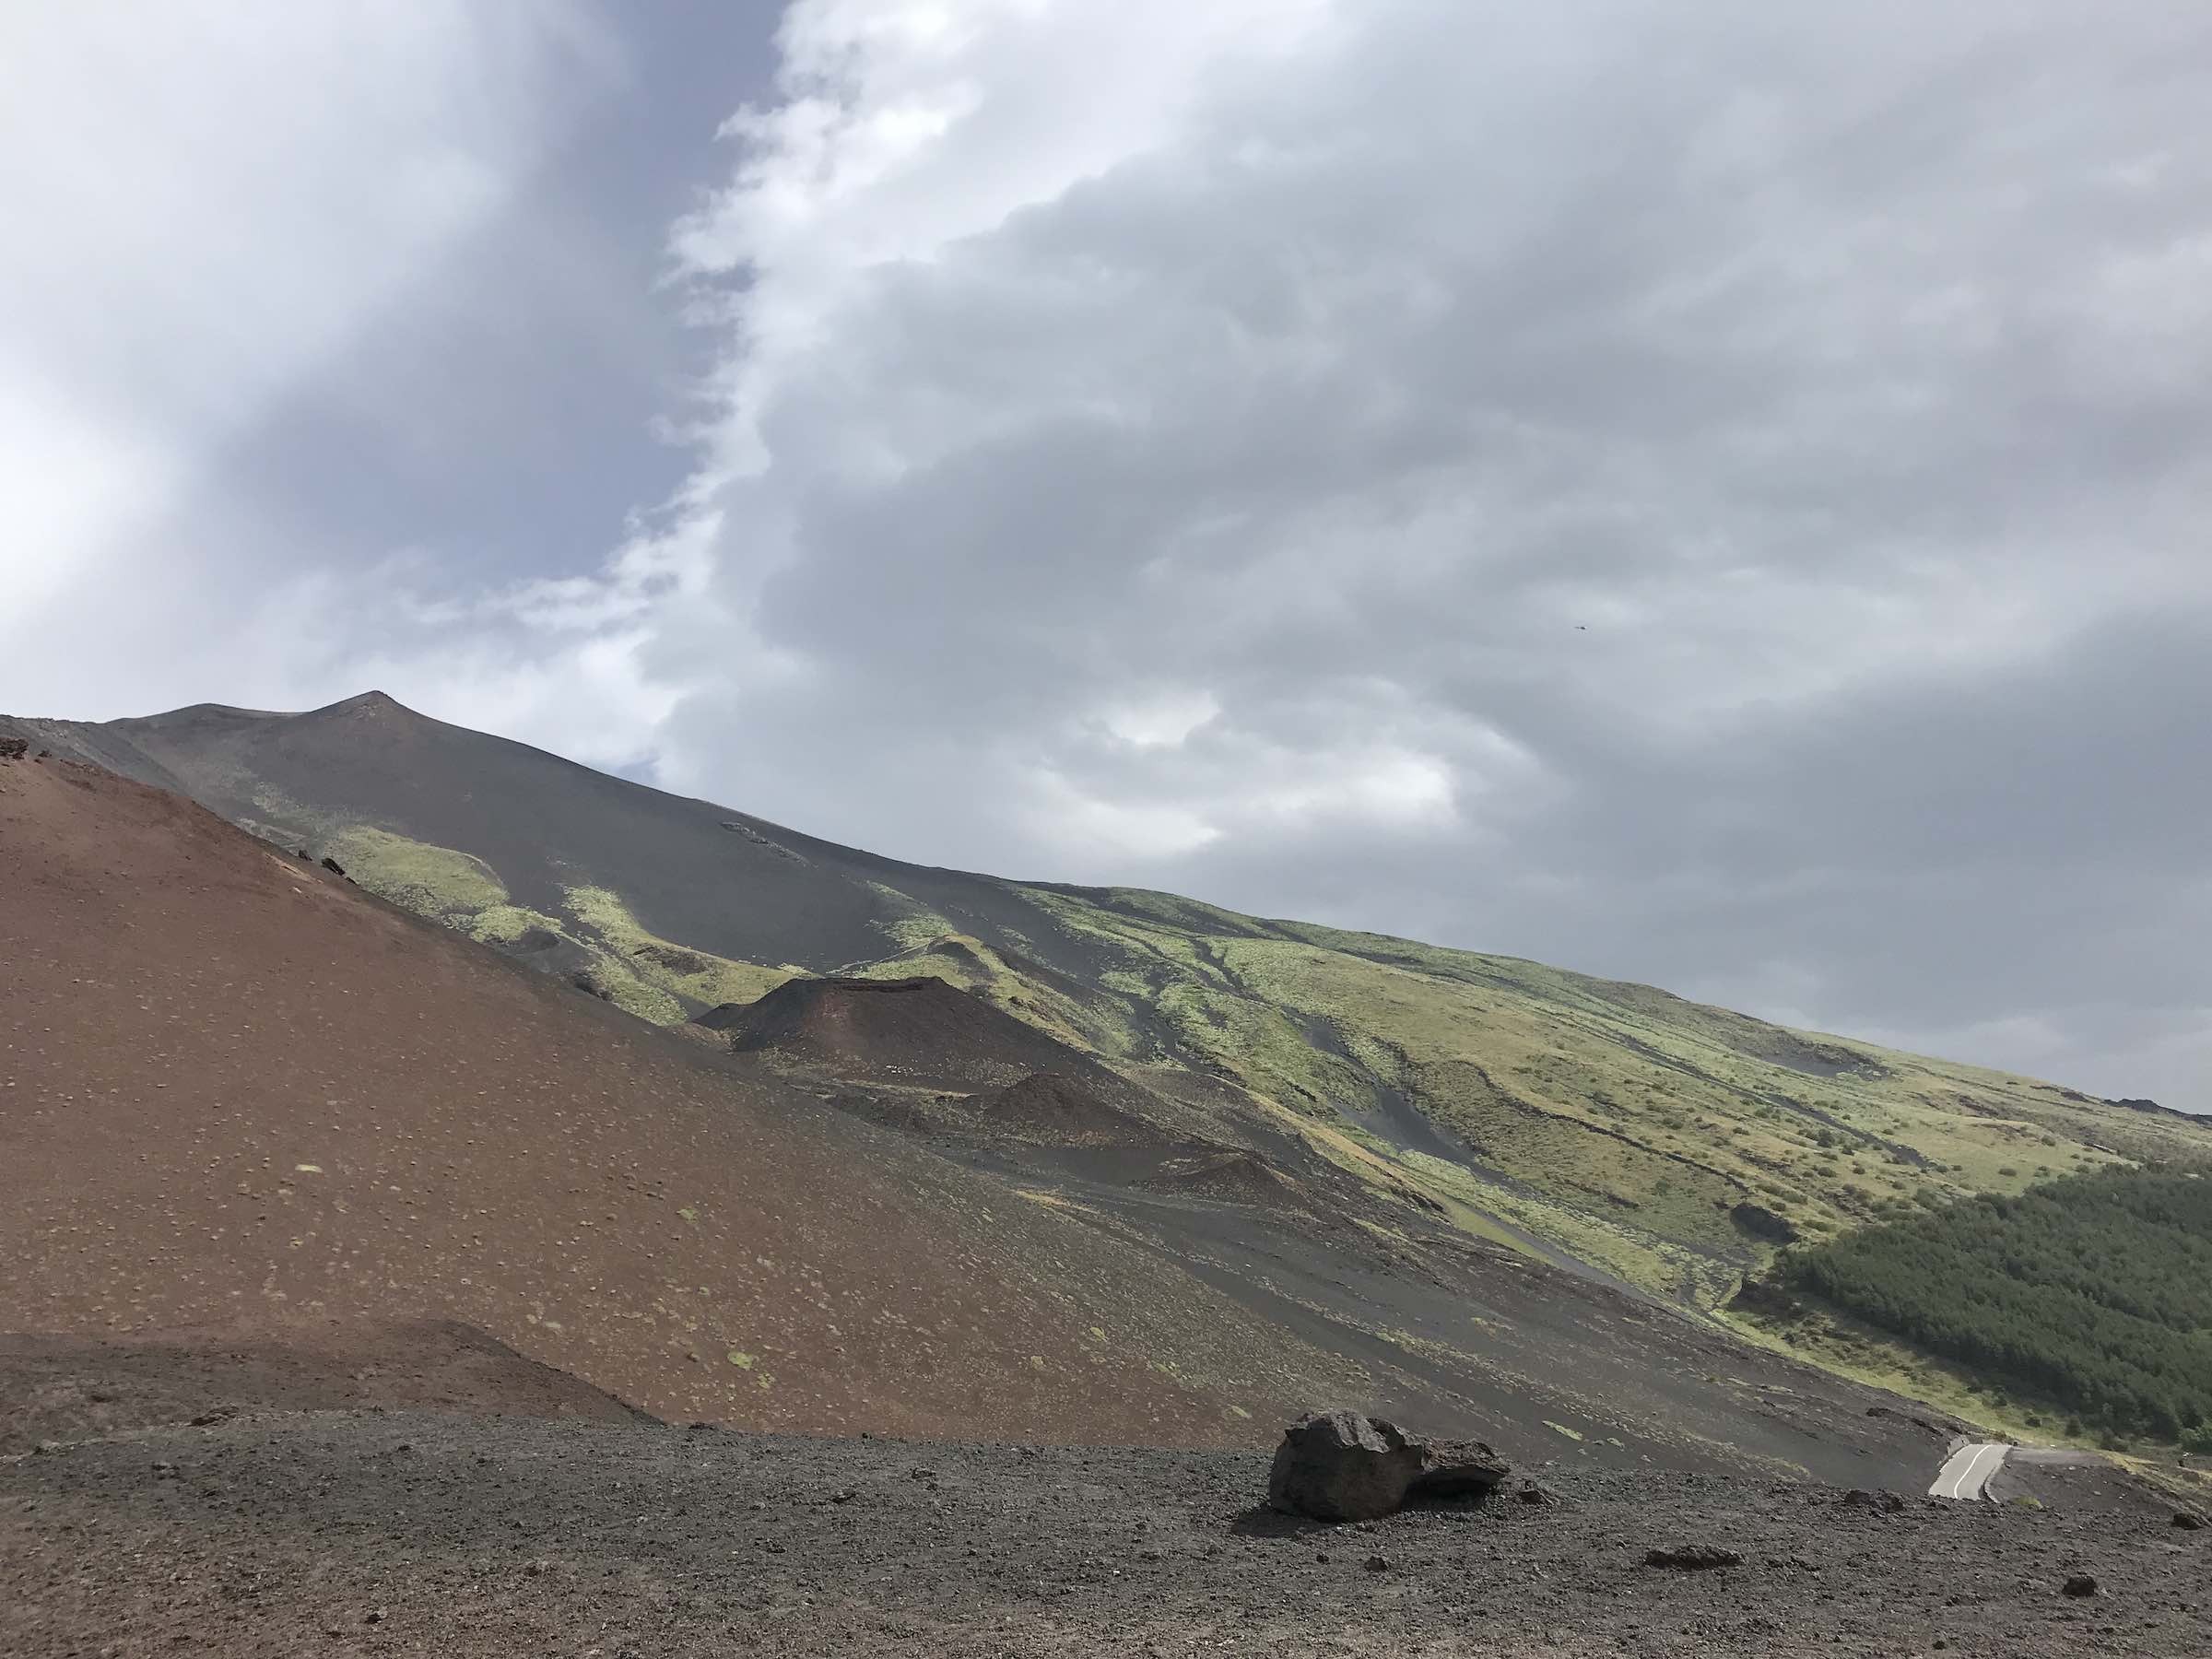 Beautiful view from the Silvestri Craters